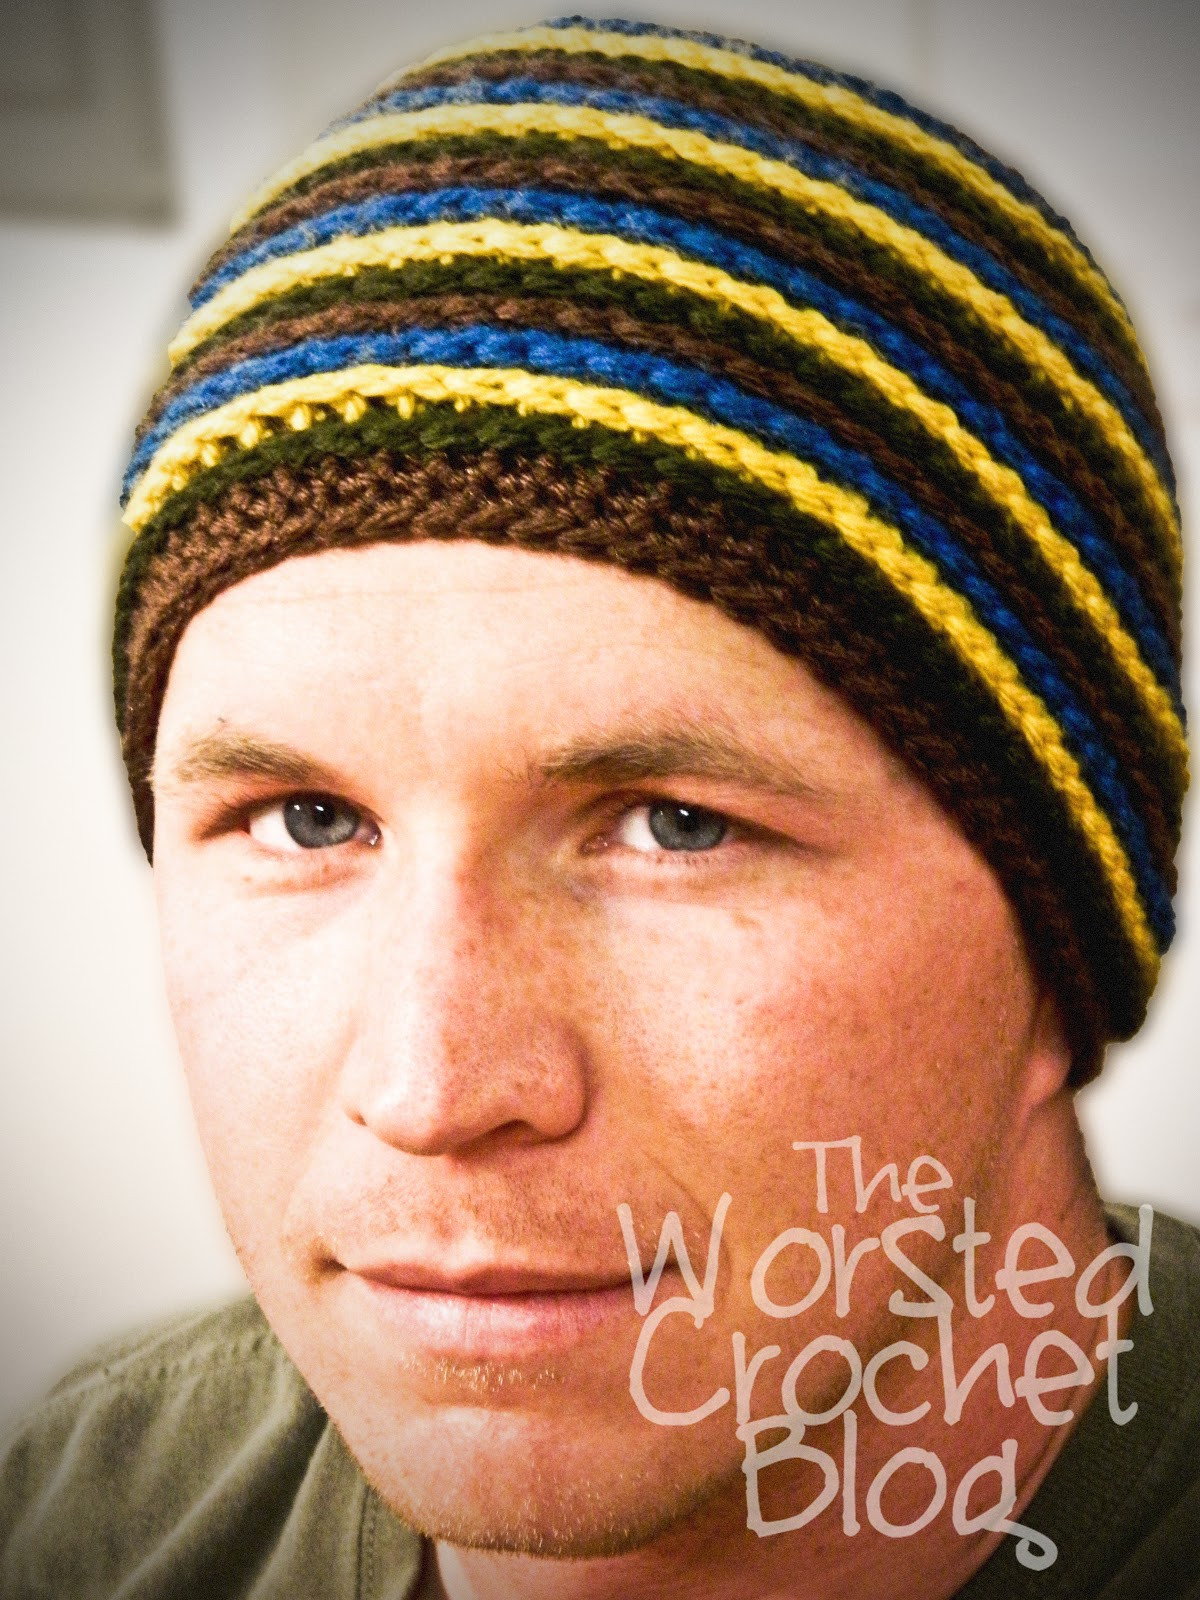 The Worsted Crochet Blog Men s Striped Beanie Pattern FREE